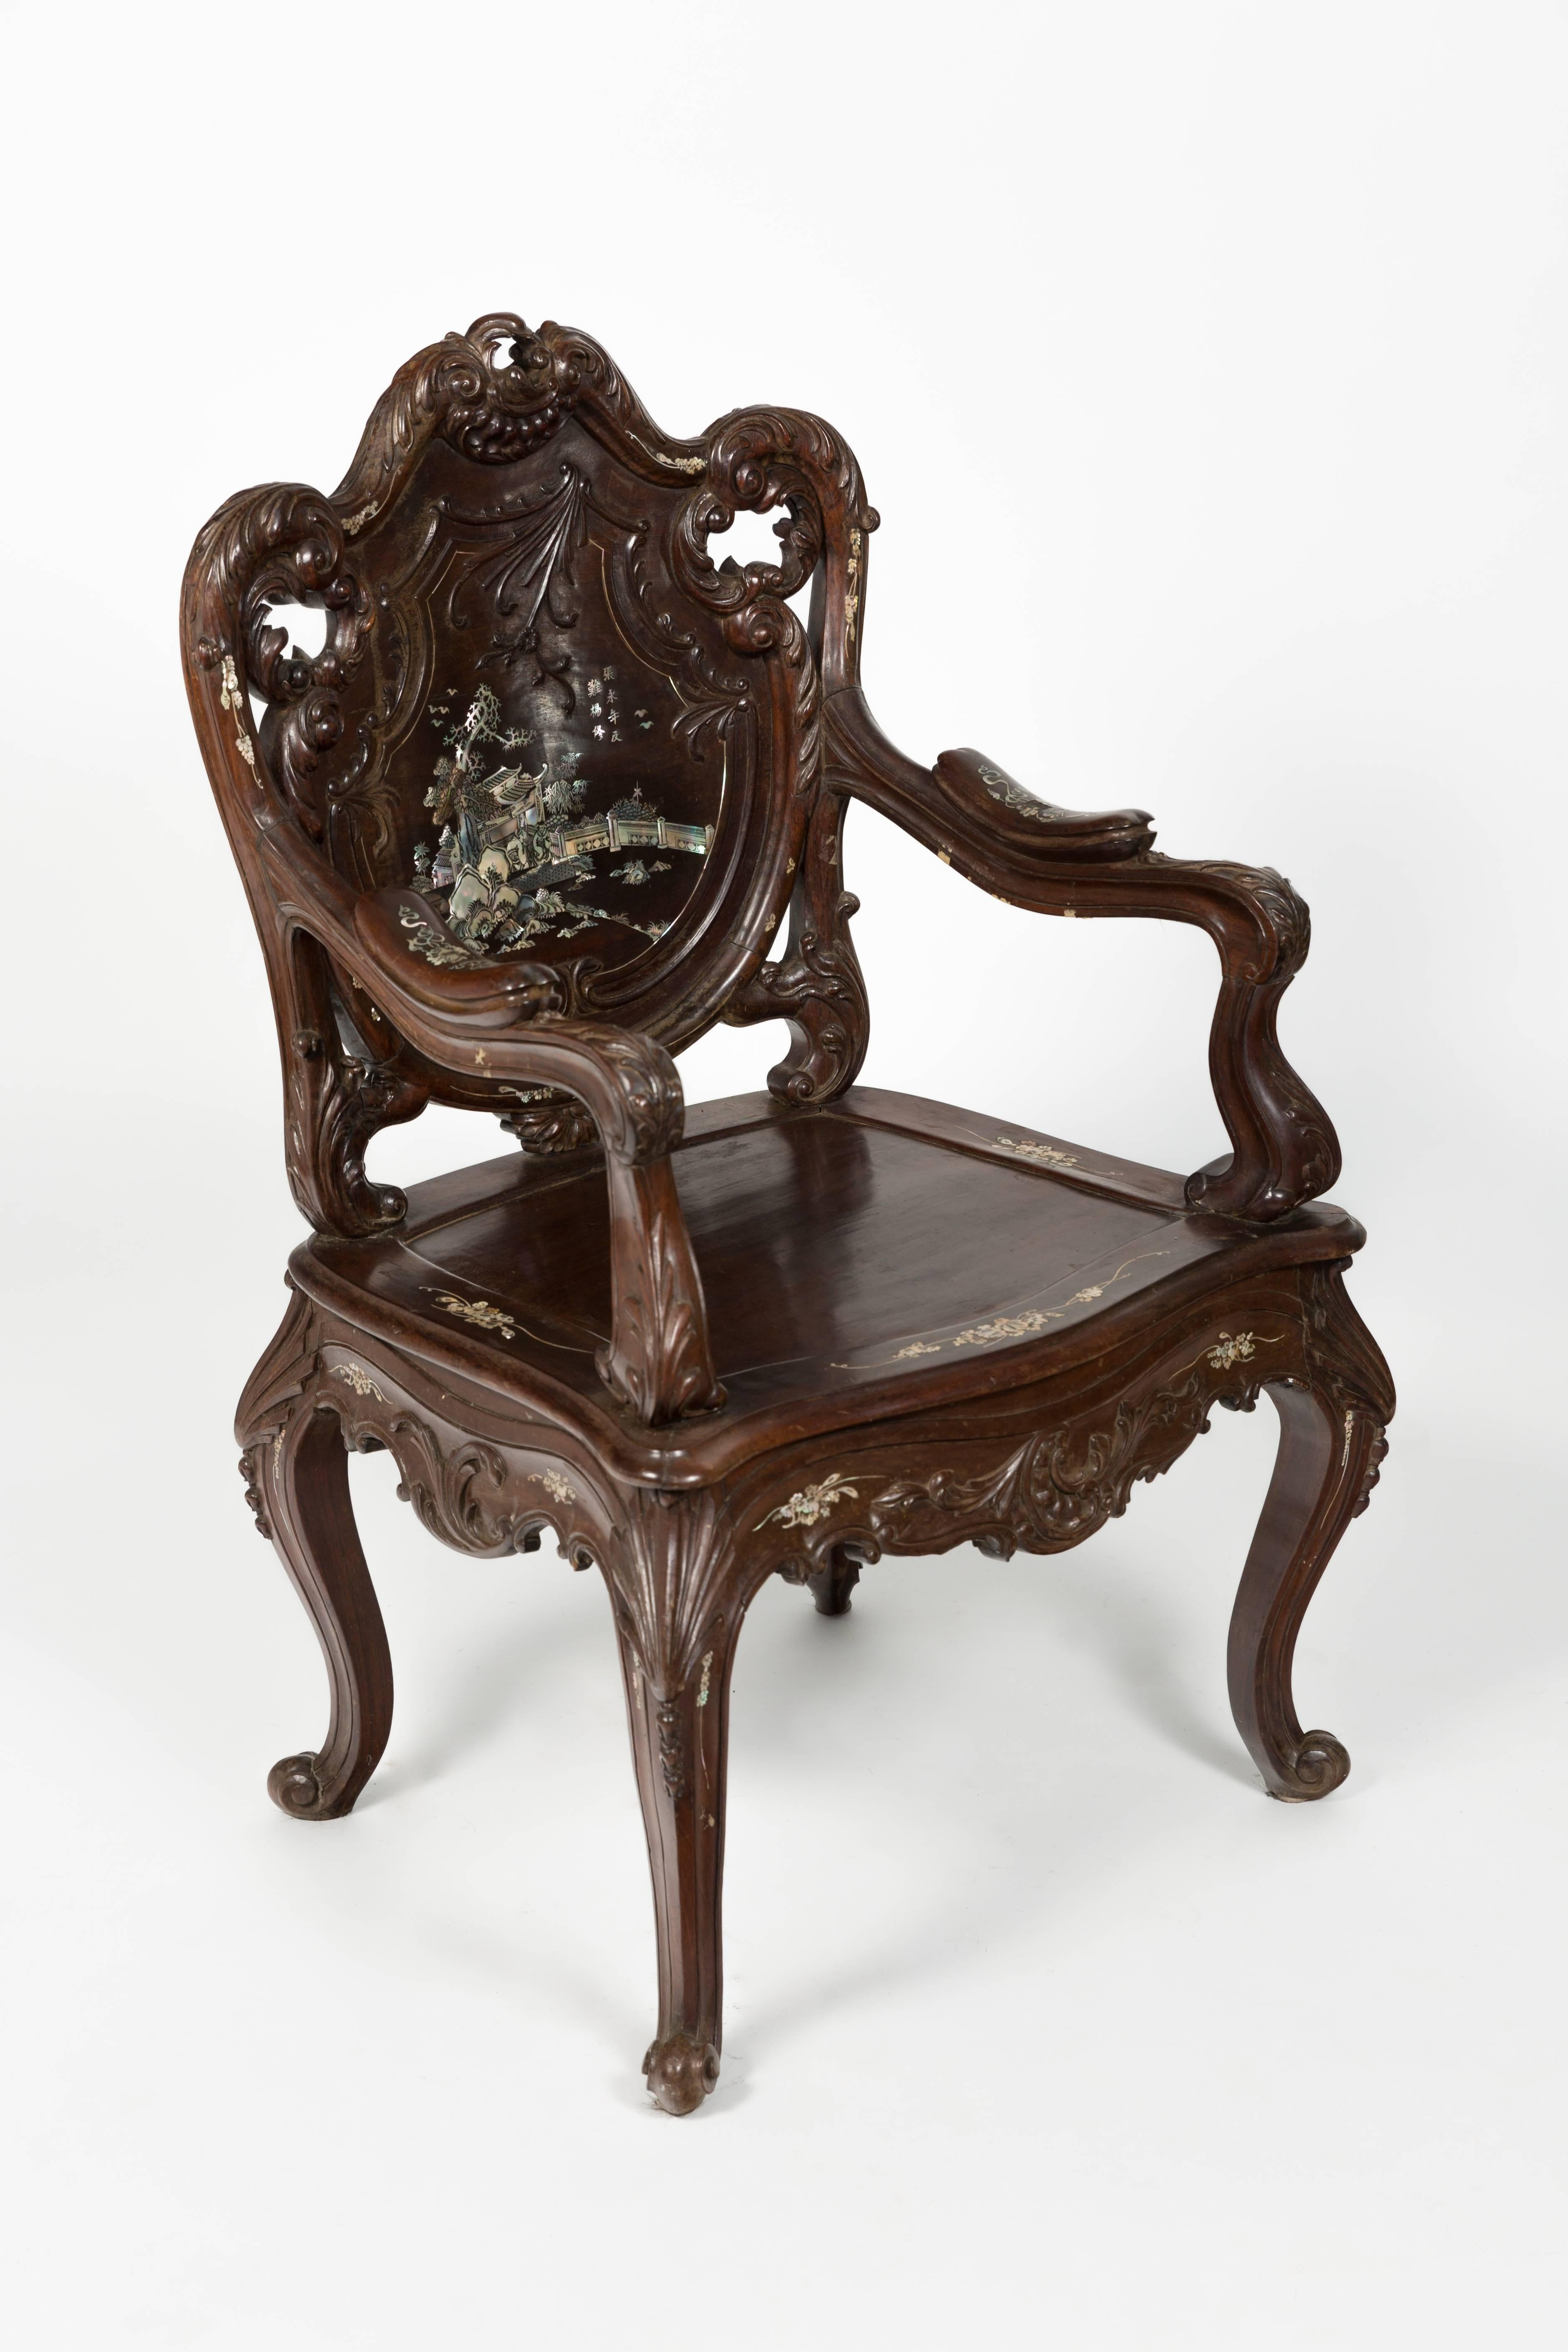 Pair Of Highly Carved Rosewood Chairs With Mother Of Pearl Inlay. Mother